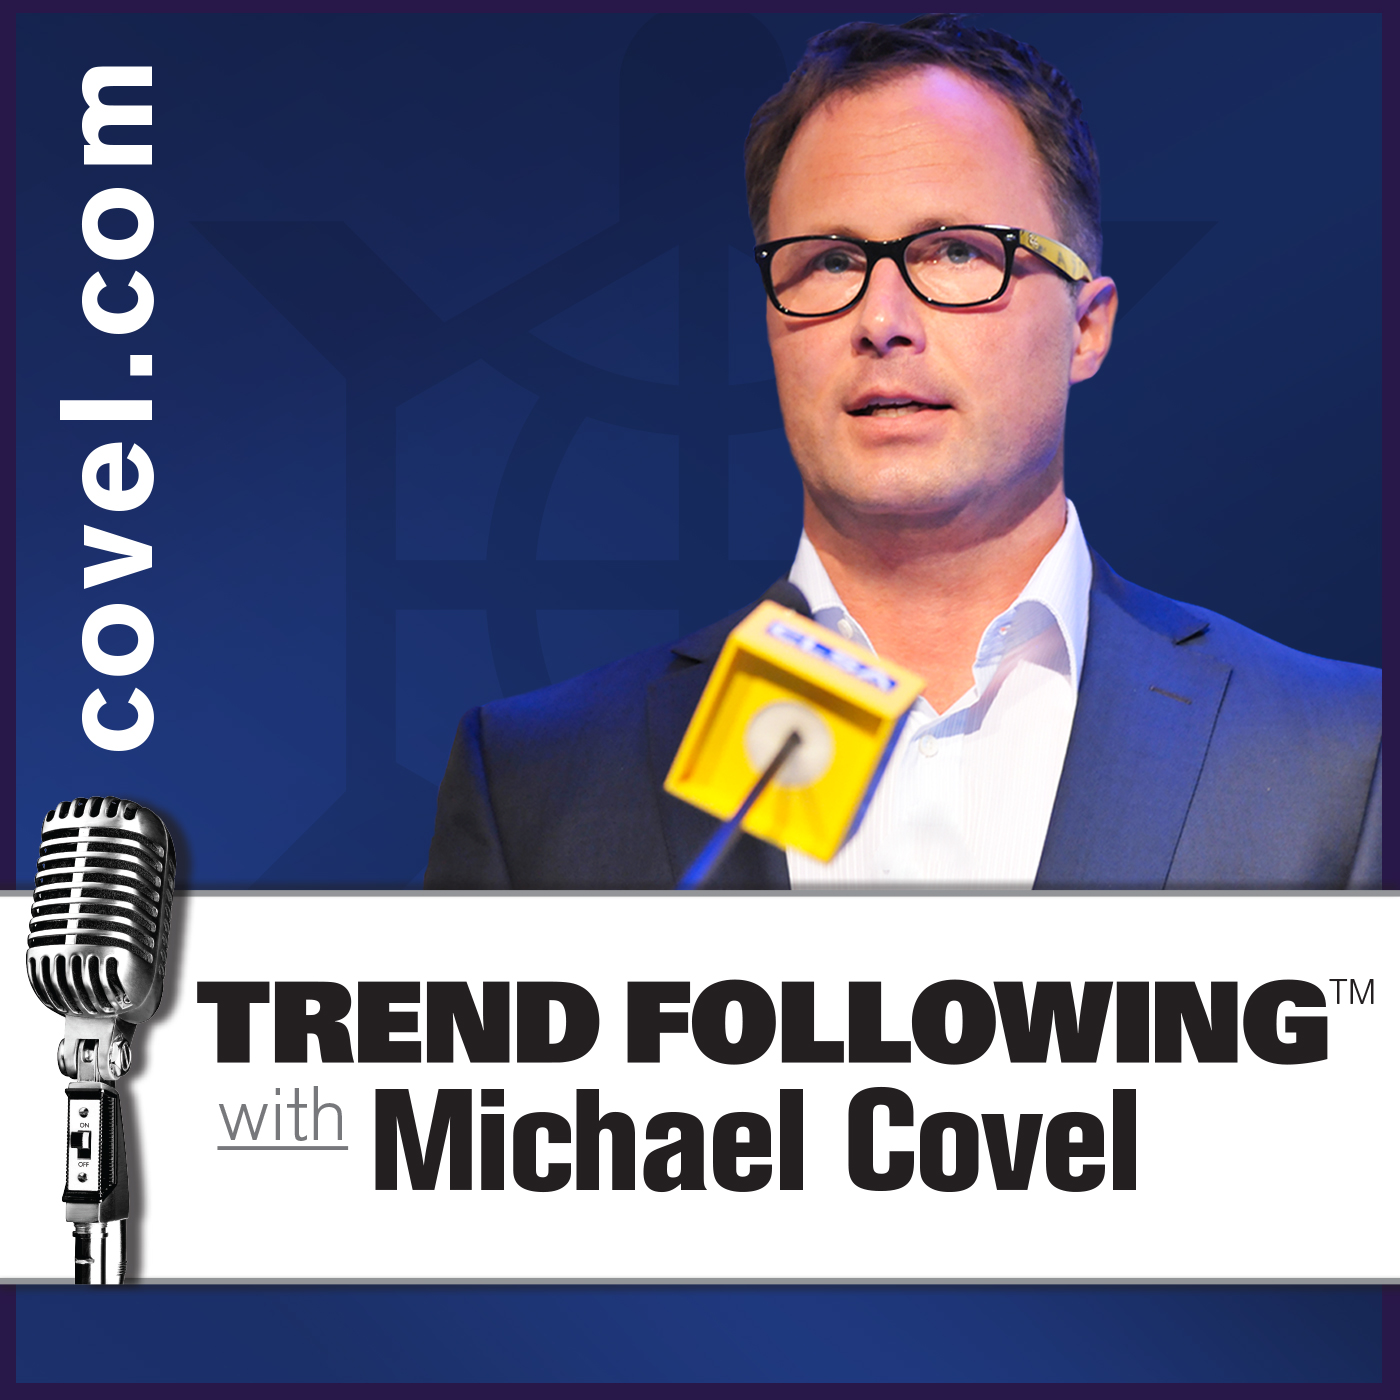 Ep. 507: Lanny Bassham Interview with Michael Covel on Trend Following Radio